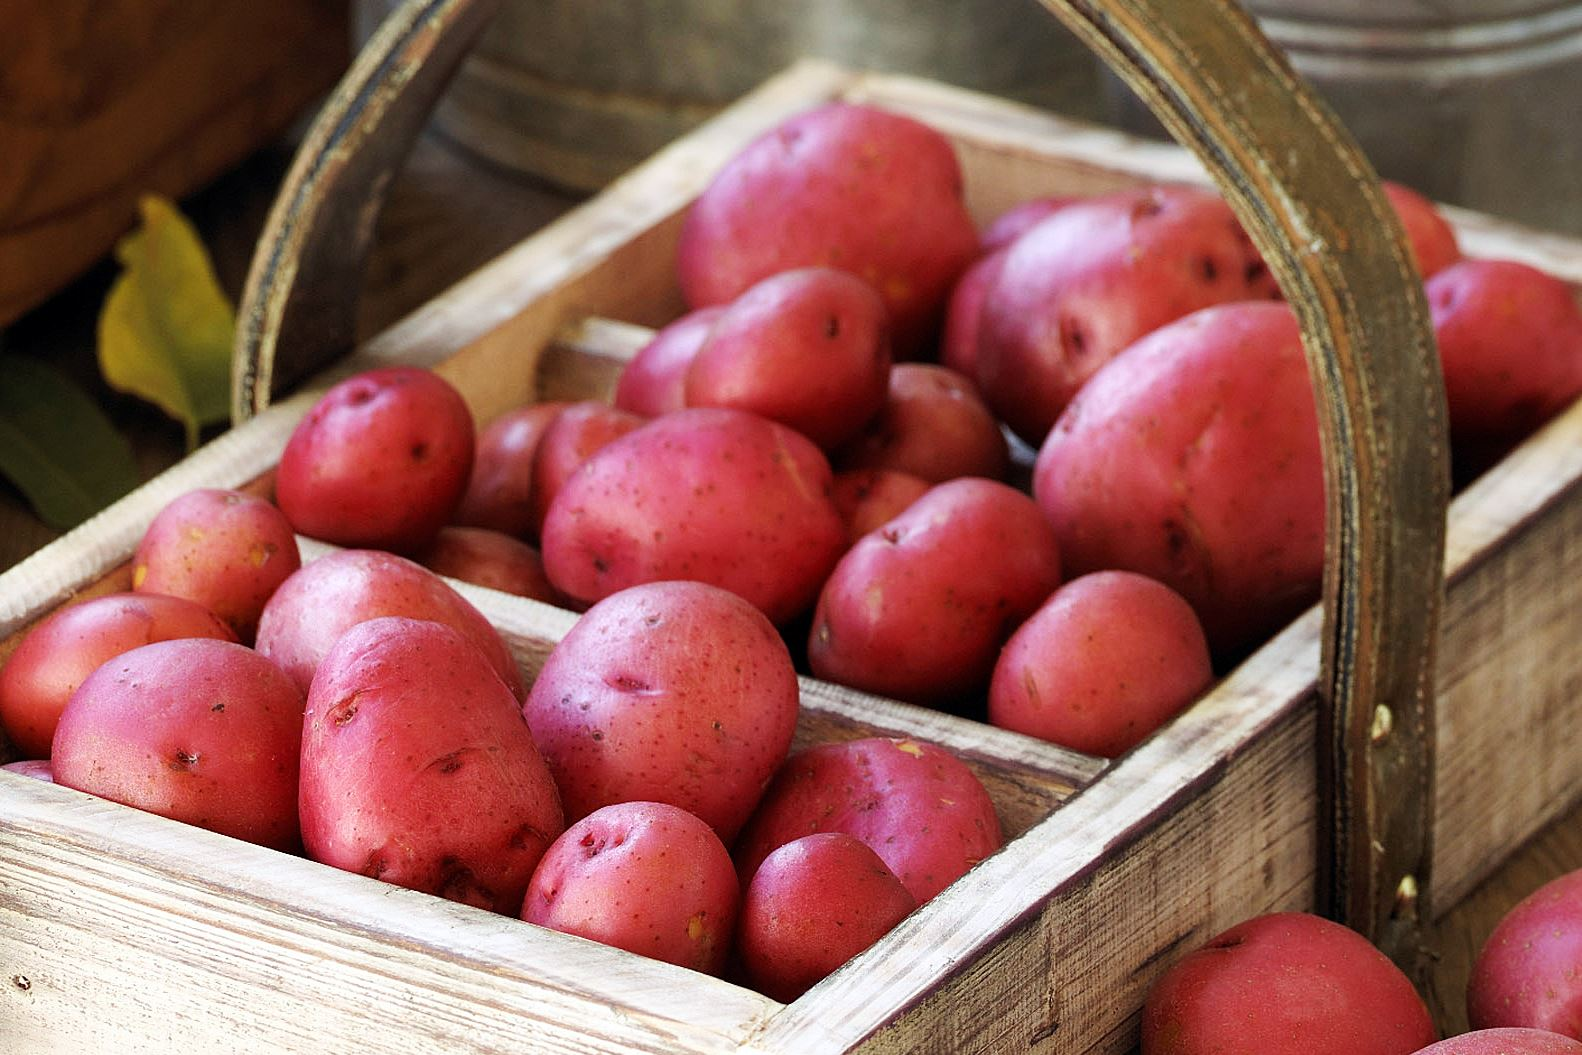 red potatoes-3 Subtly sweet in flavor, red potatoes have a waxy, moist and creamy texture.